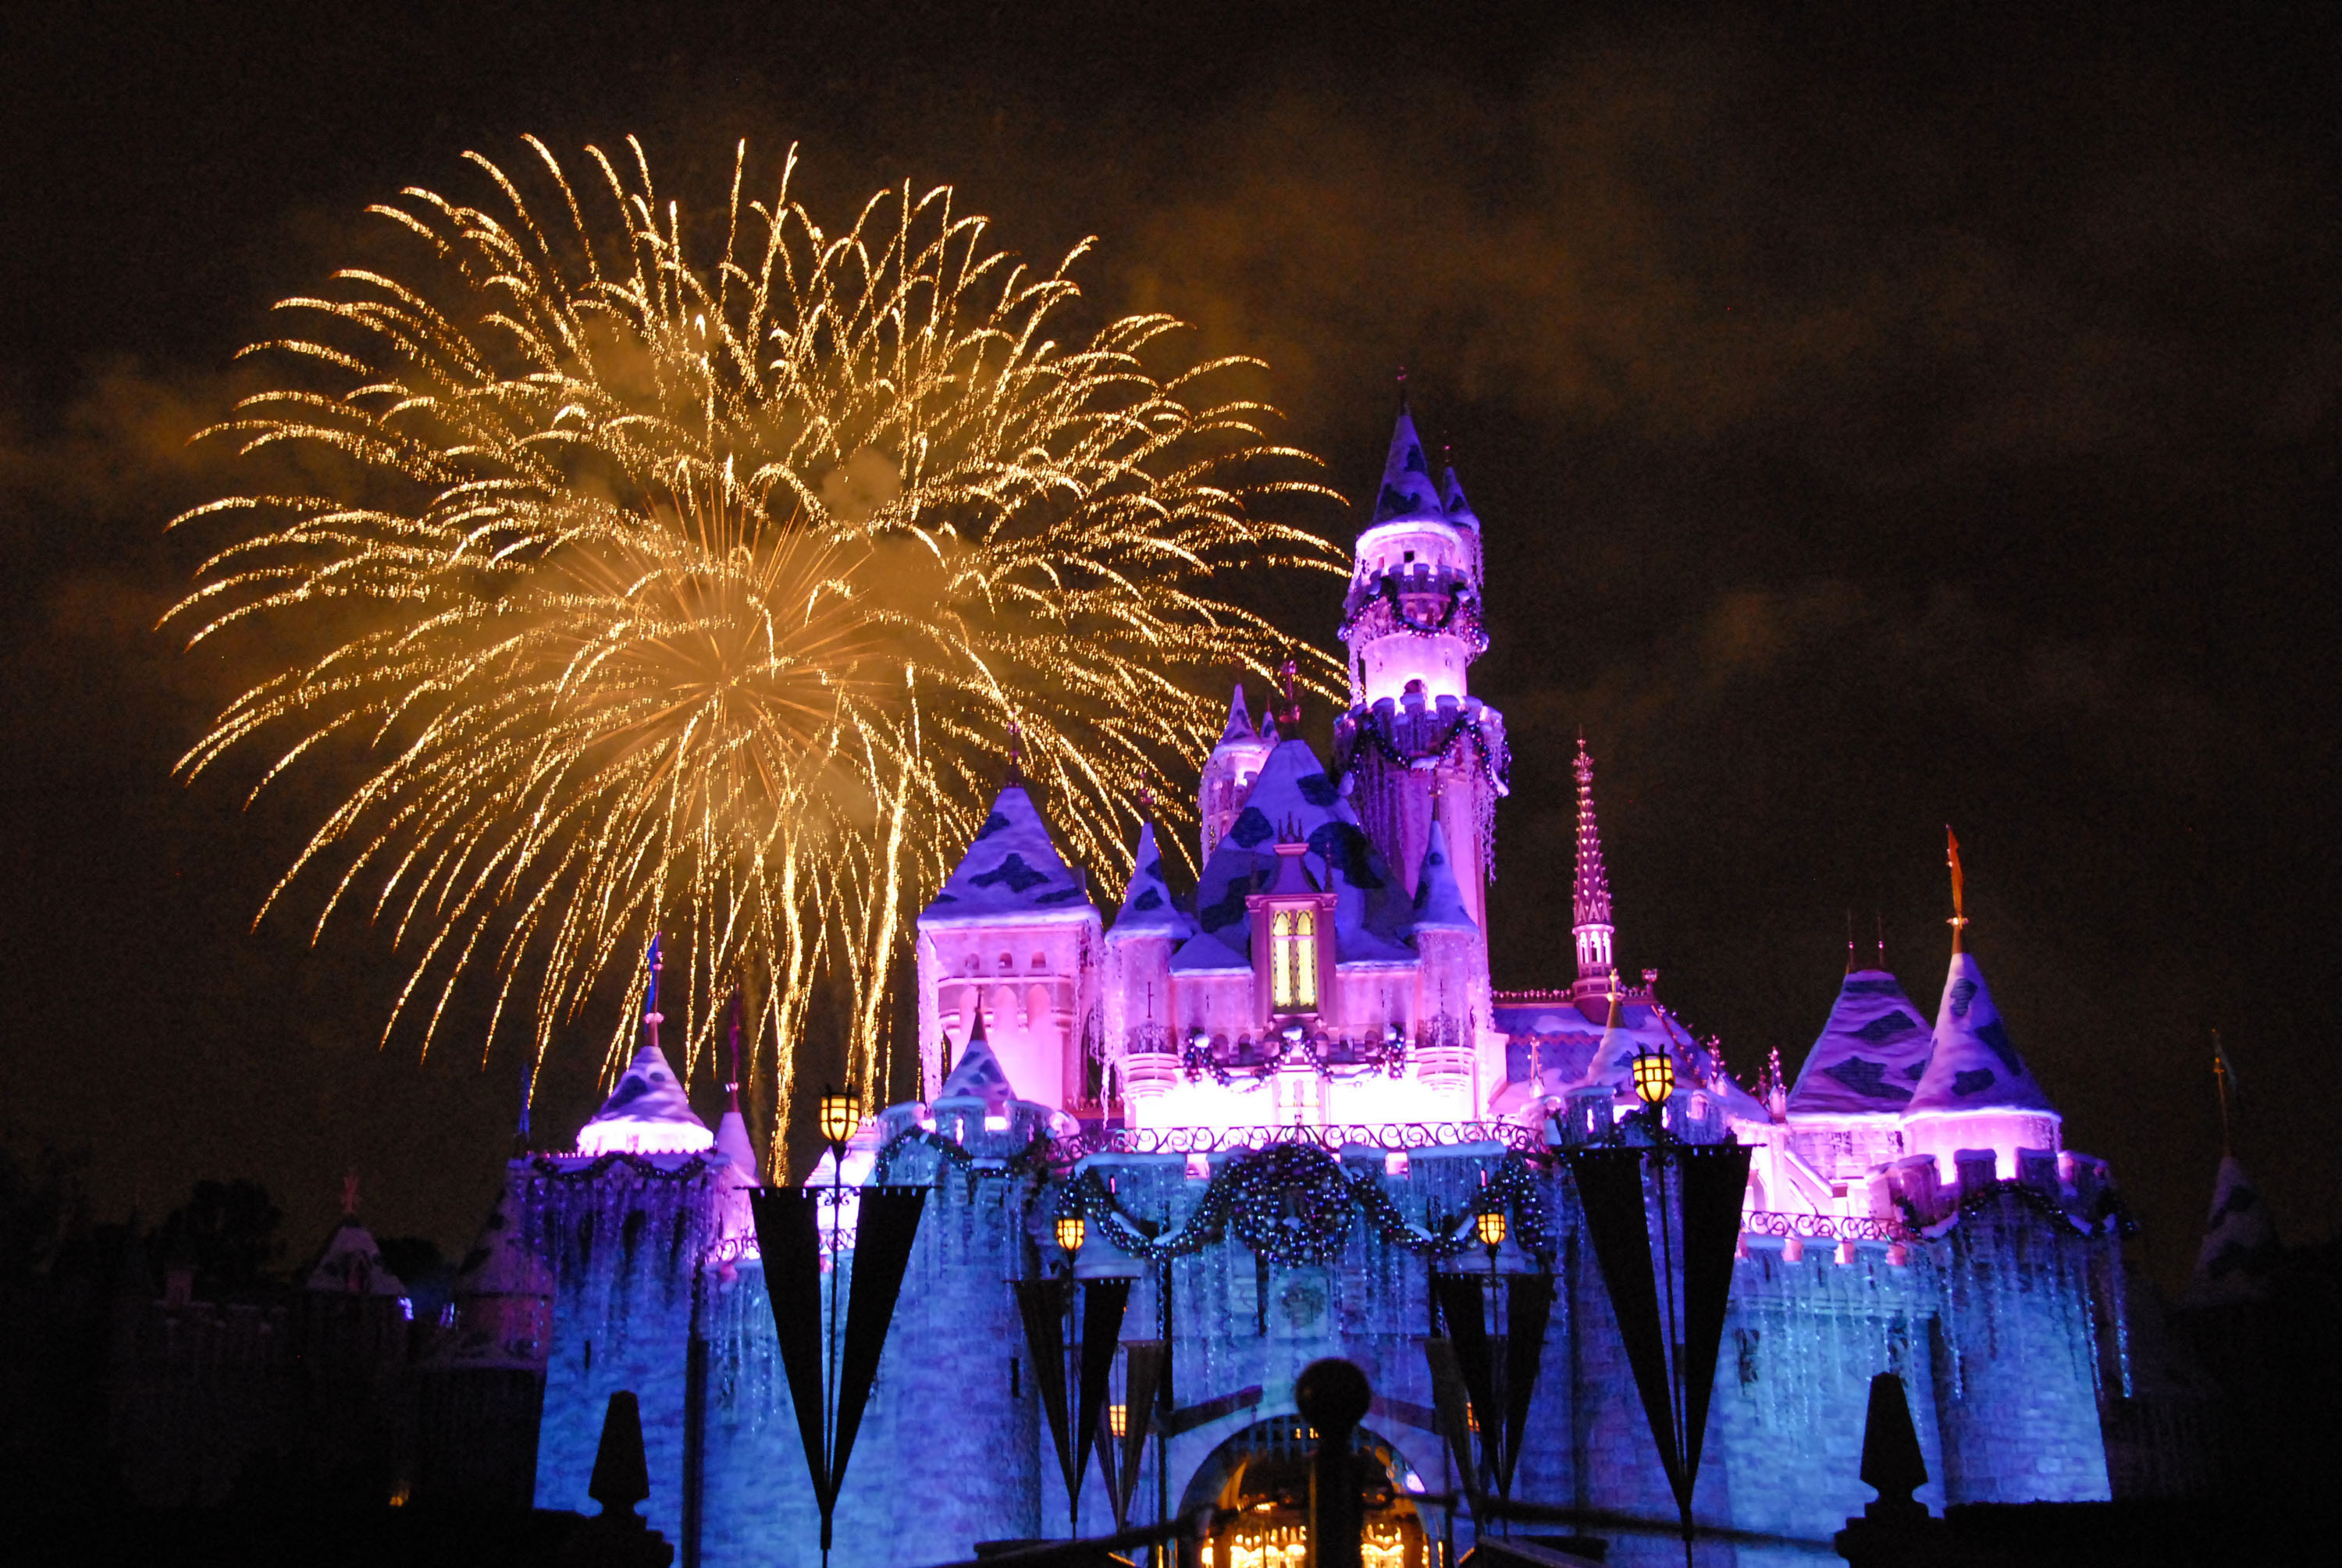 Get your shots first: The Magic Kingdom is feeling sick